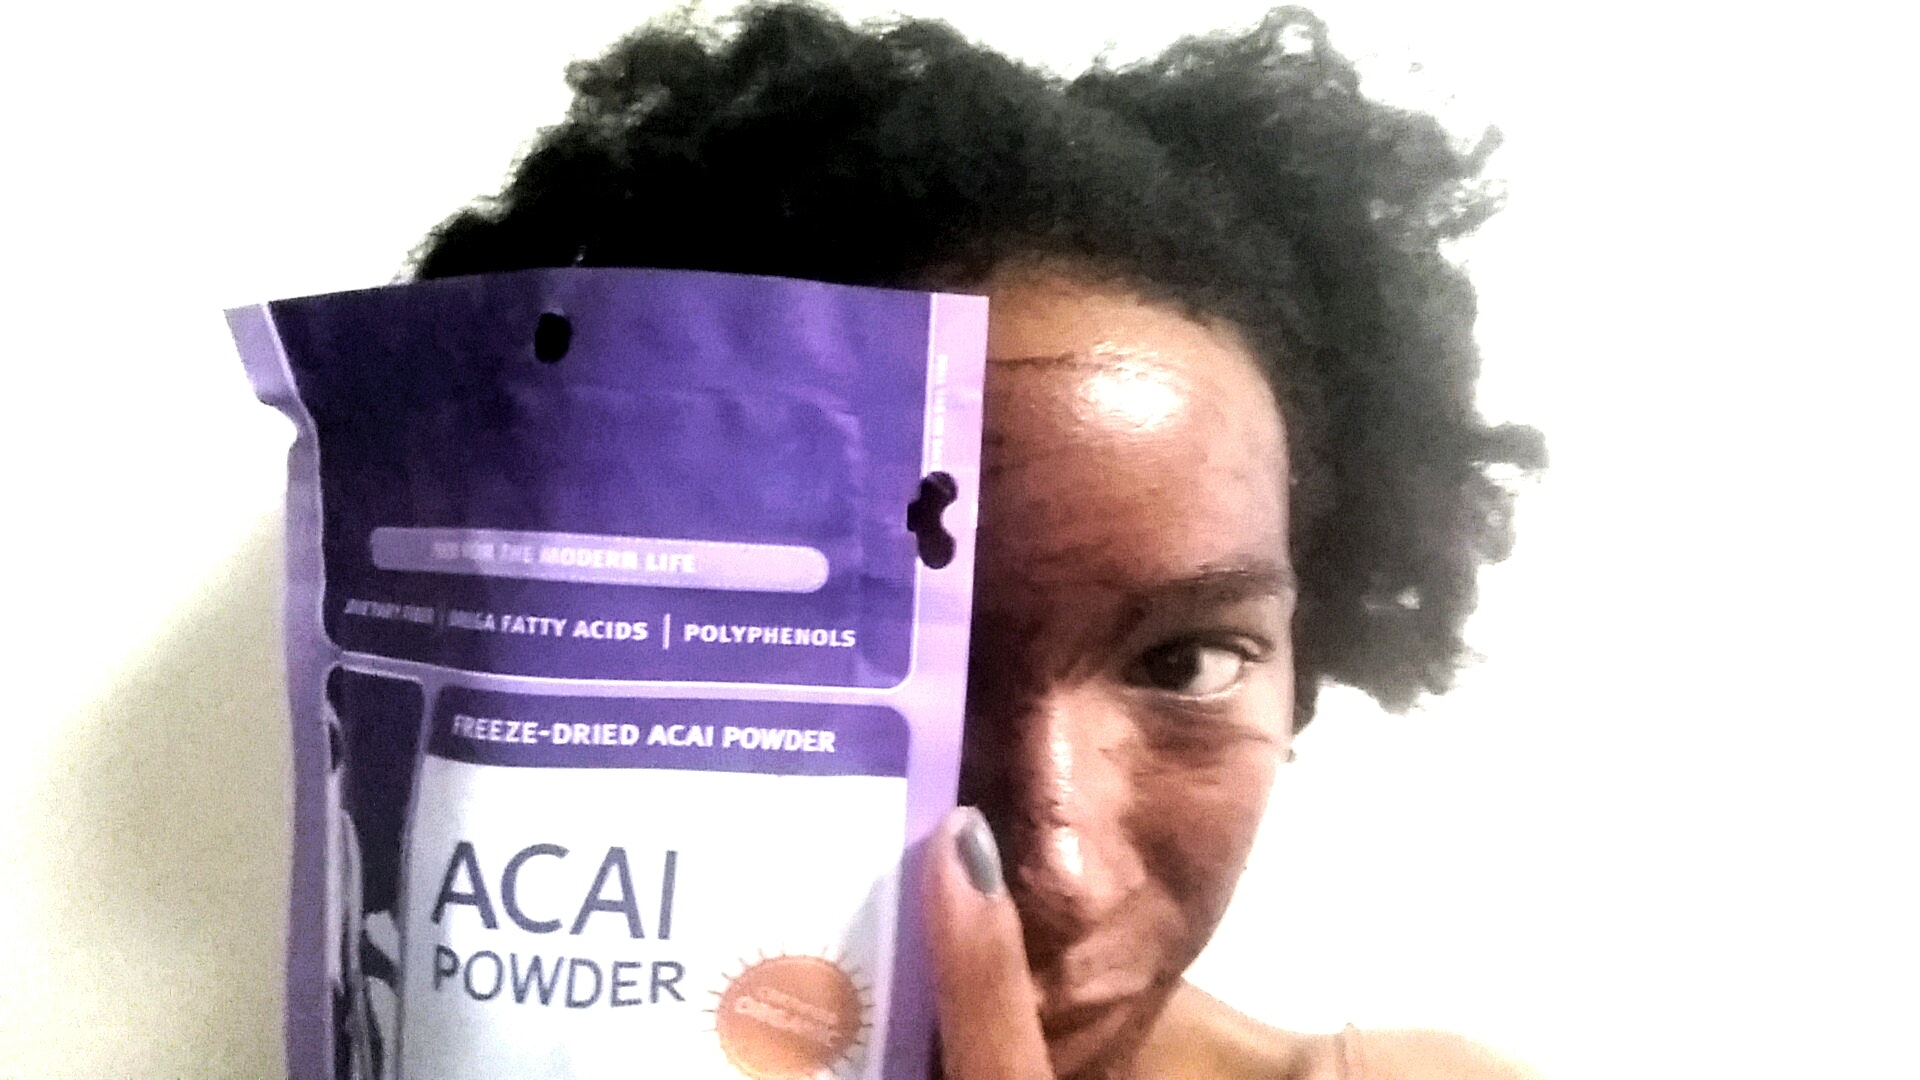 Acai Before After Acaiberry Adonai Get Serious Berry Benefits For Hair Skin With These Beauty Diys To At Home